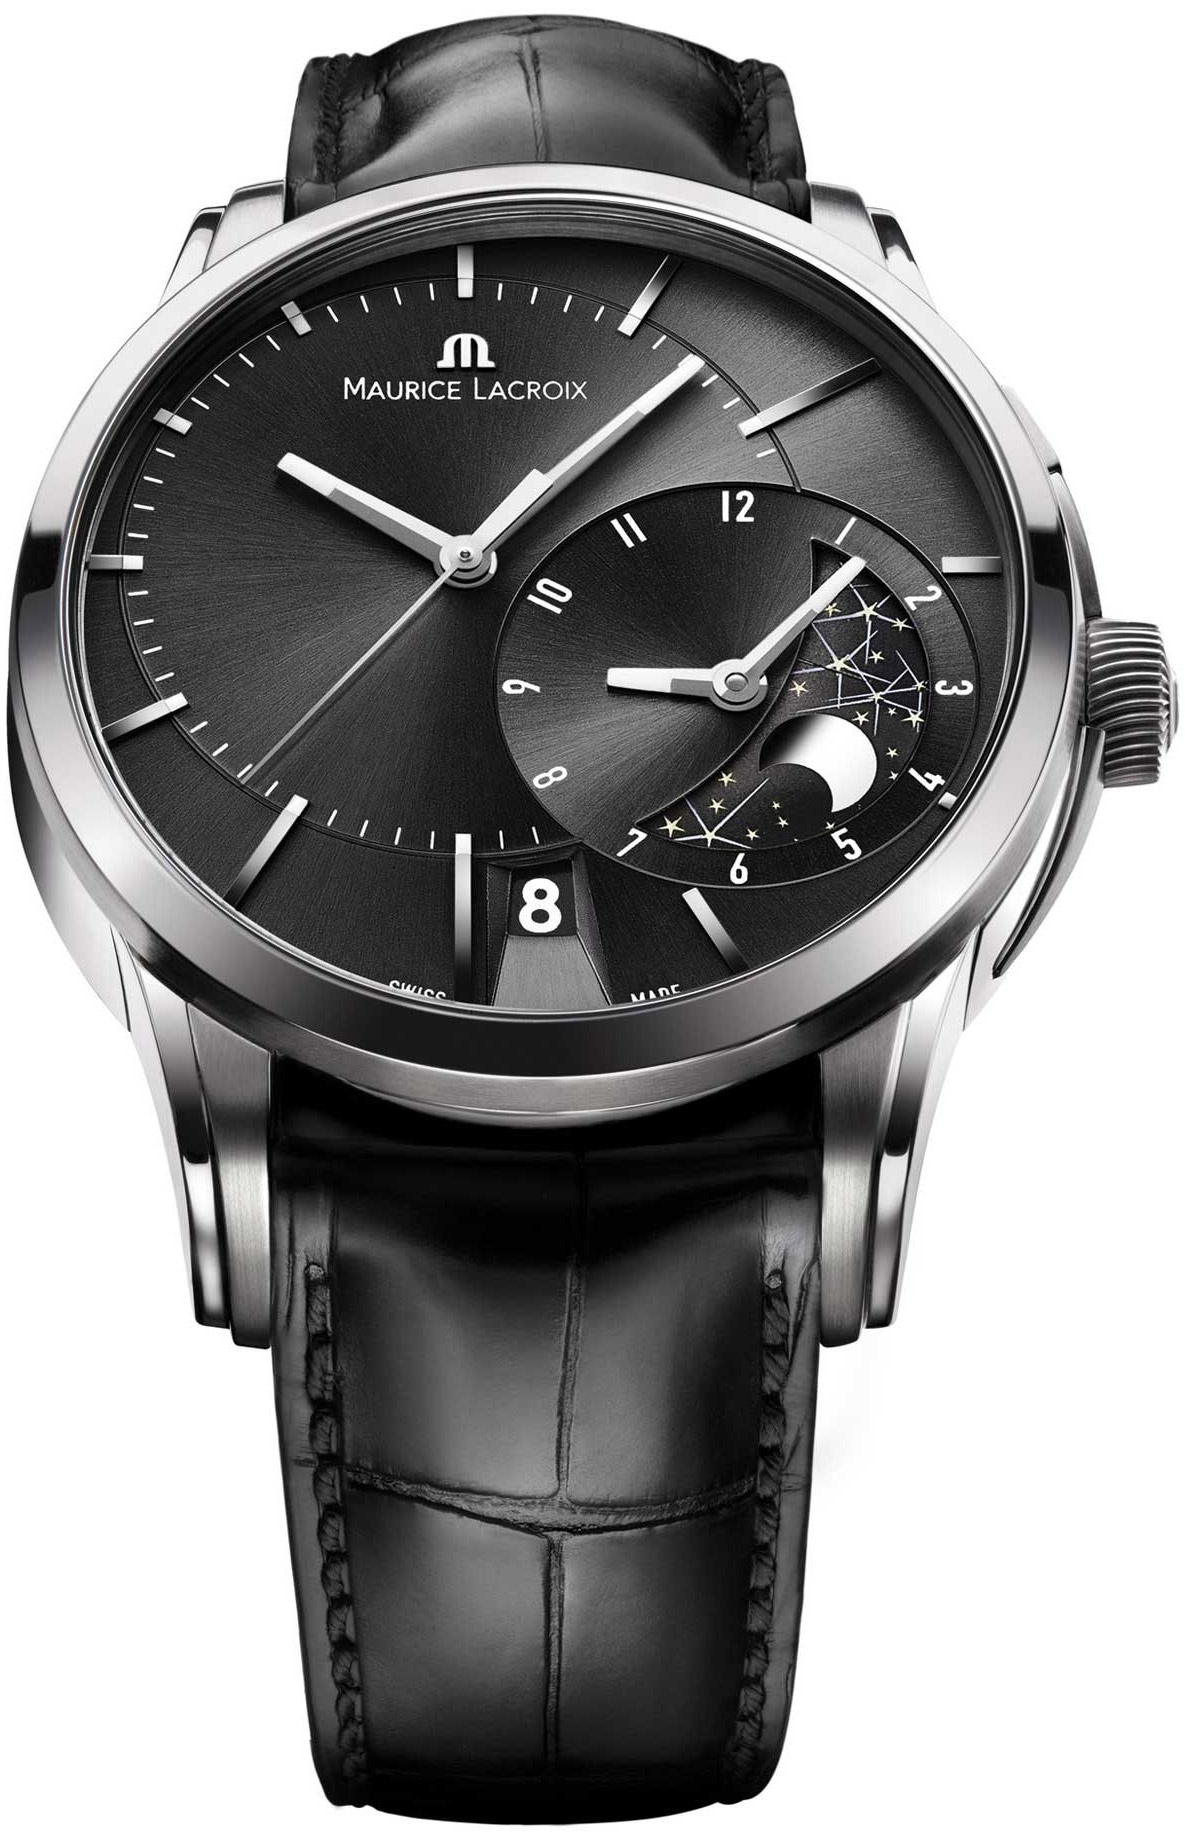 Maurice lacroix pontos decentrique gmt men 39 s watch model pt6118 ss001331 for Maurice lacroix watches